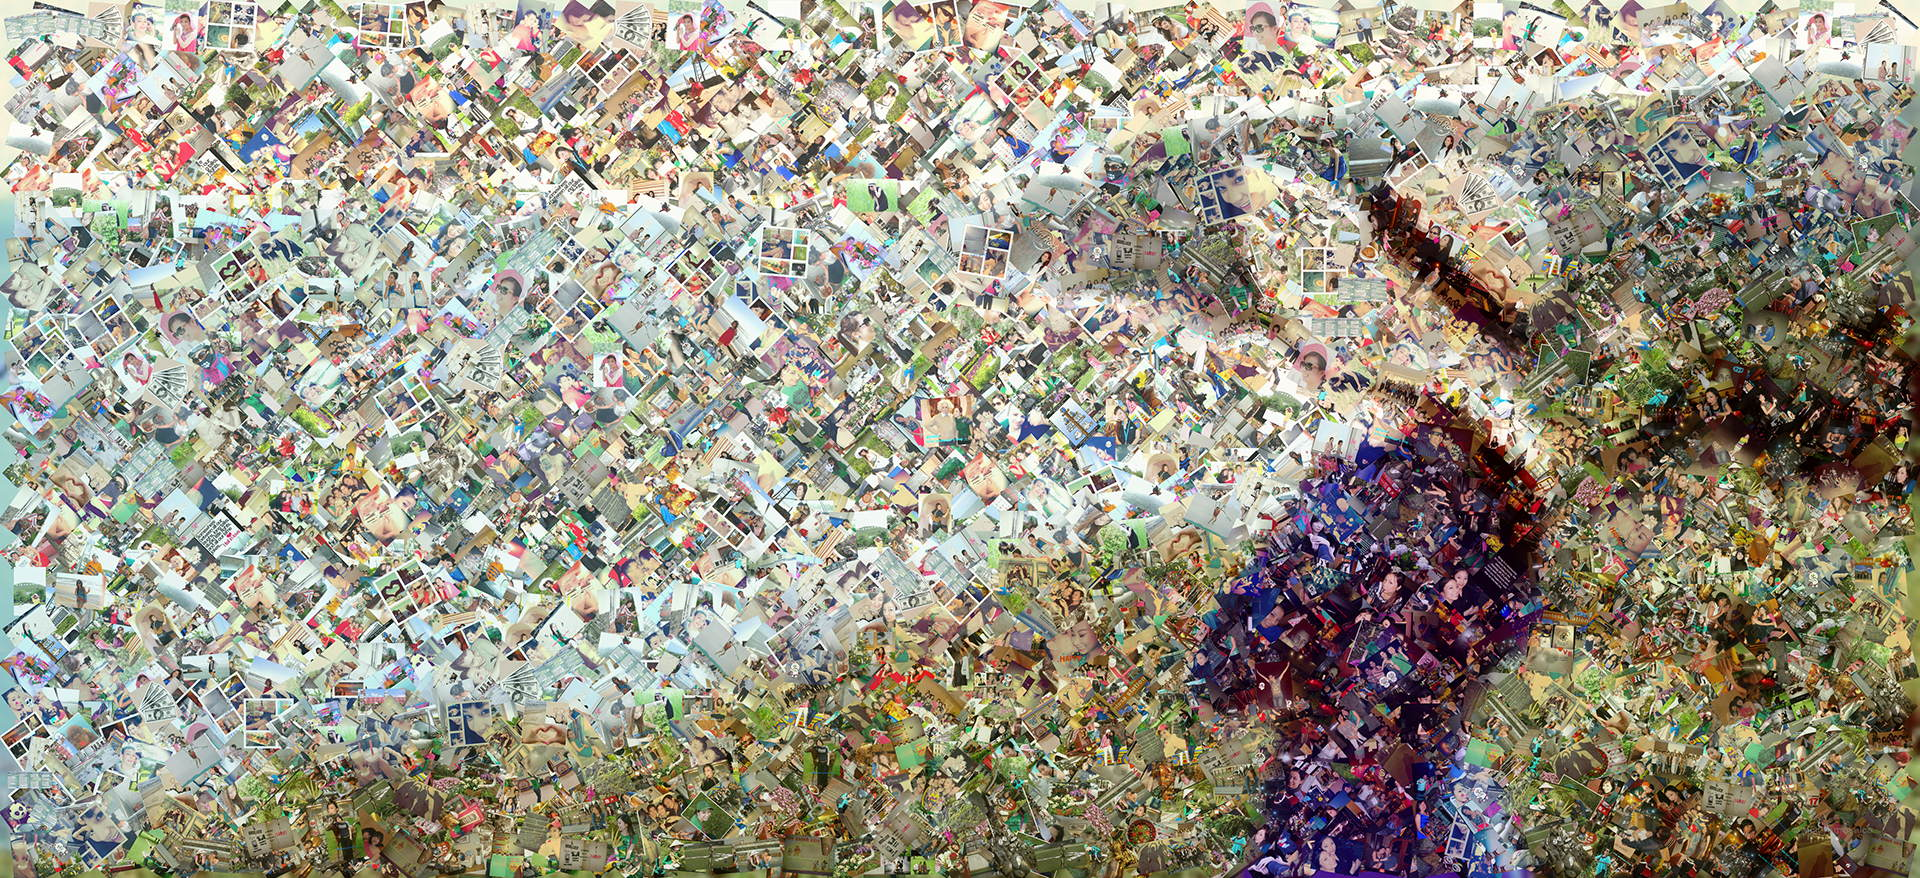 photo mosaic created using over 600 photos of family and friends